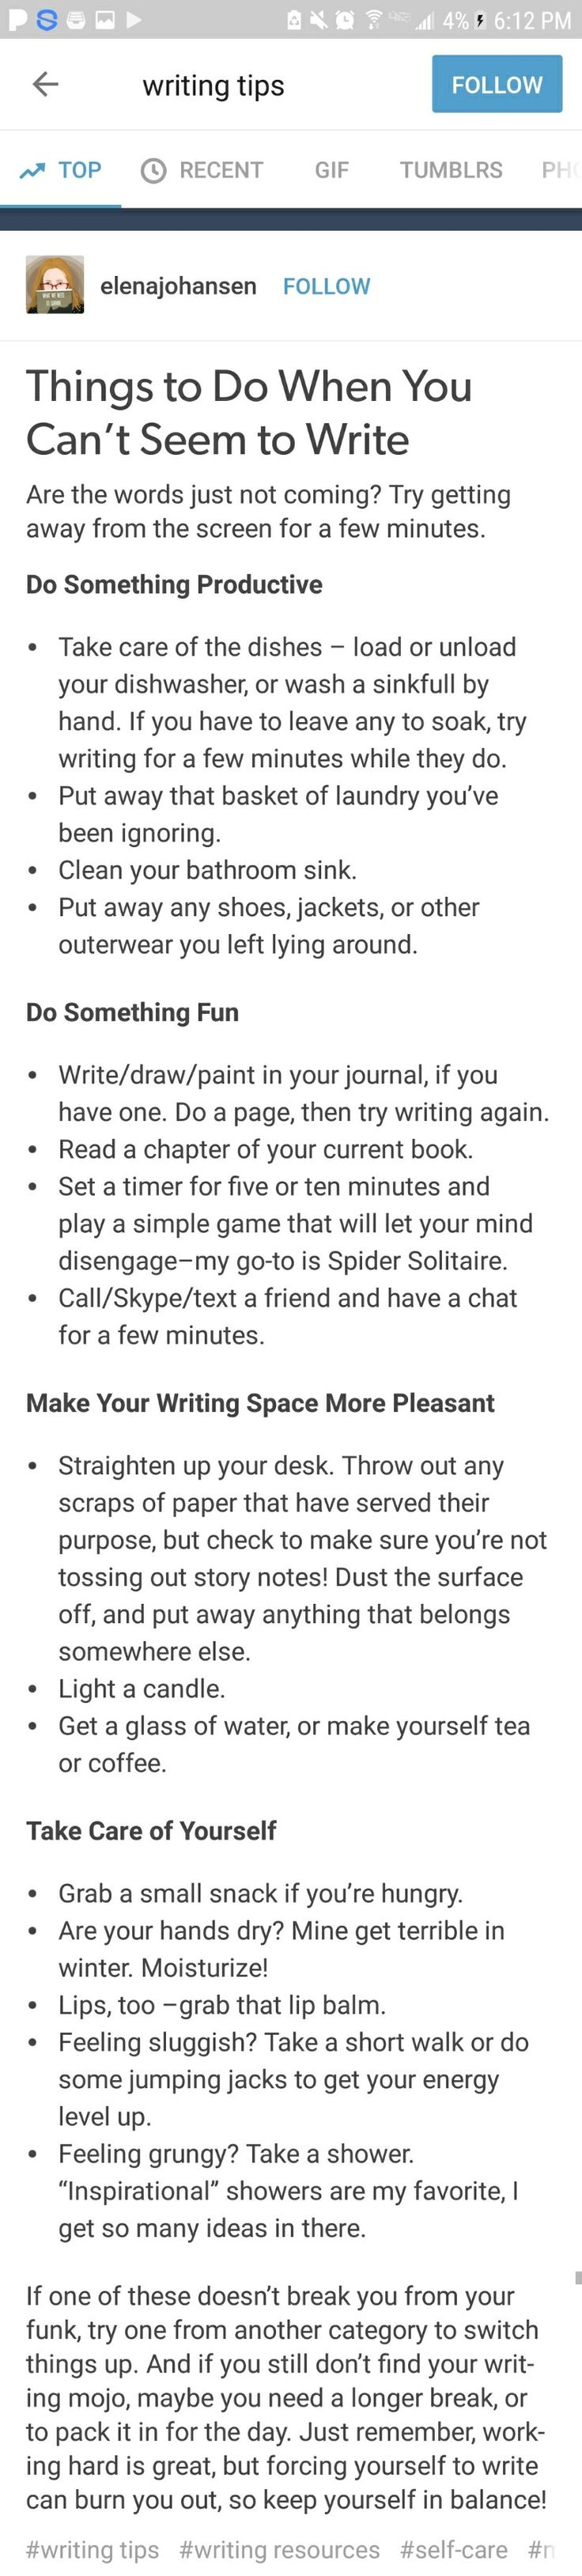 I keep burning myself out on my writing because I don't do this enough.